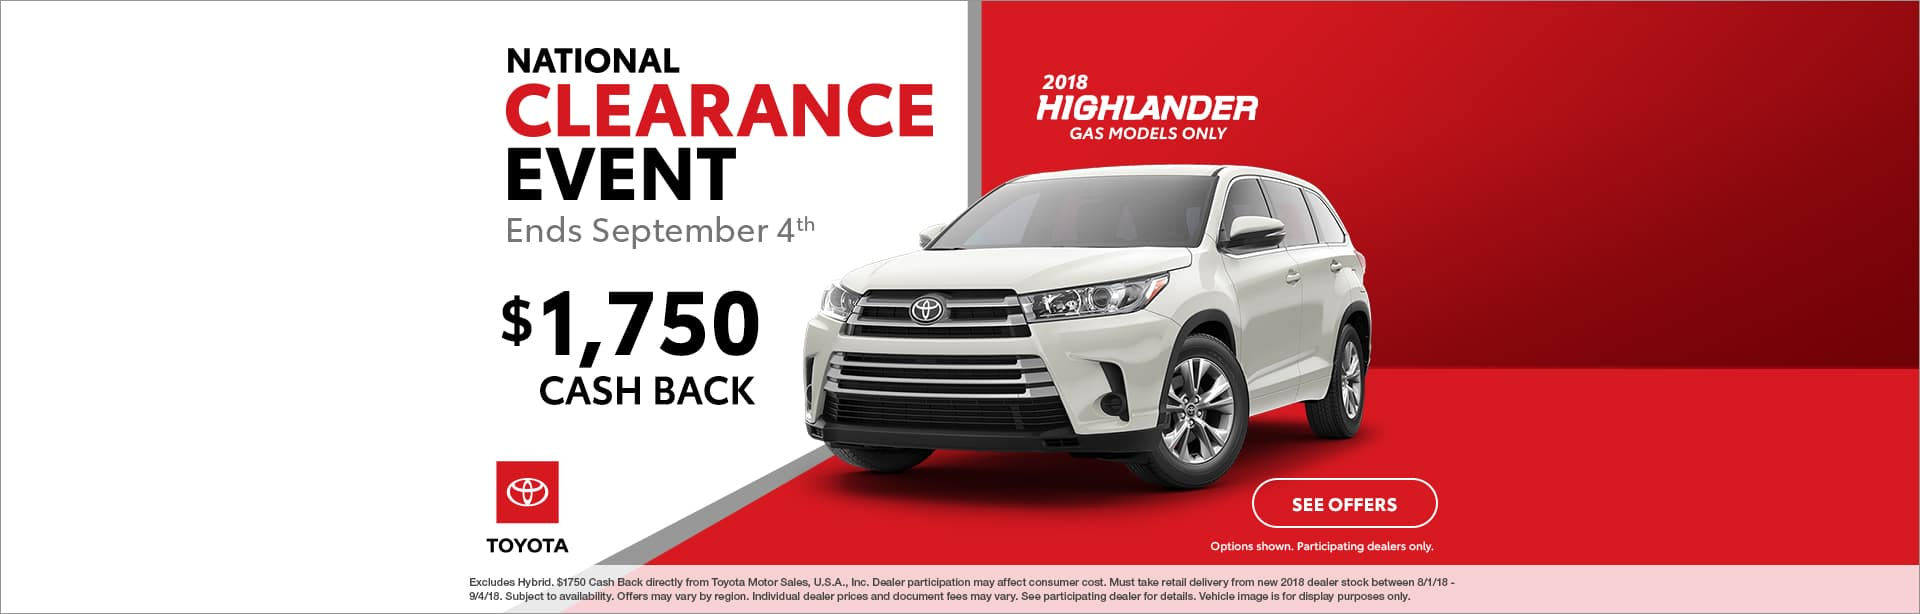 Highlander Cash Back Offer Cain Toyota North Canton Ohio